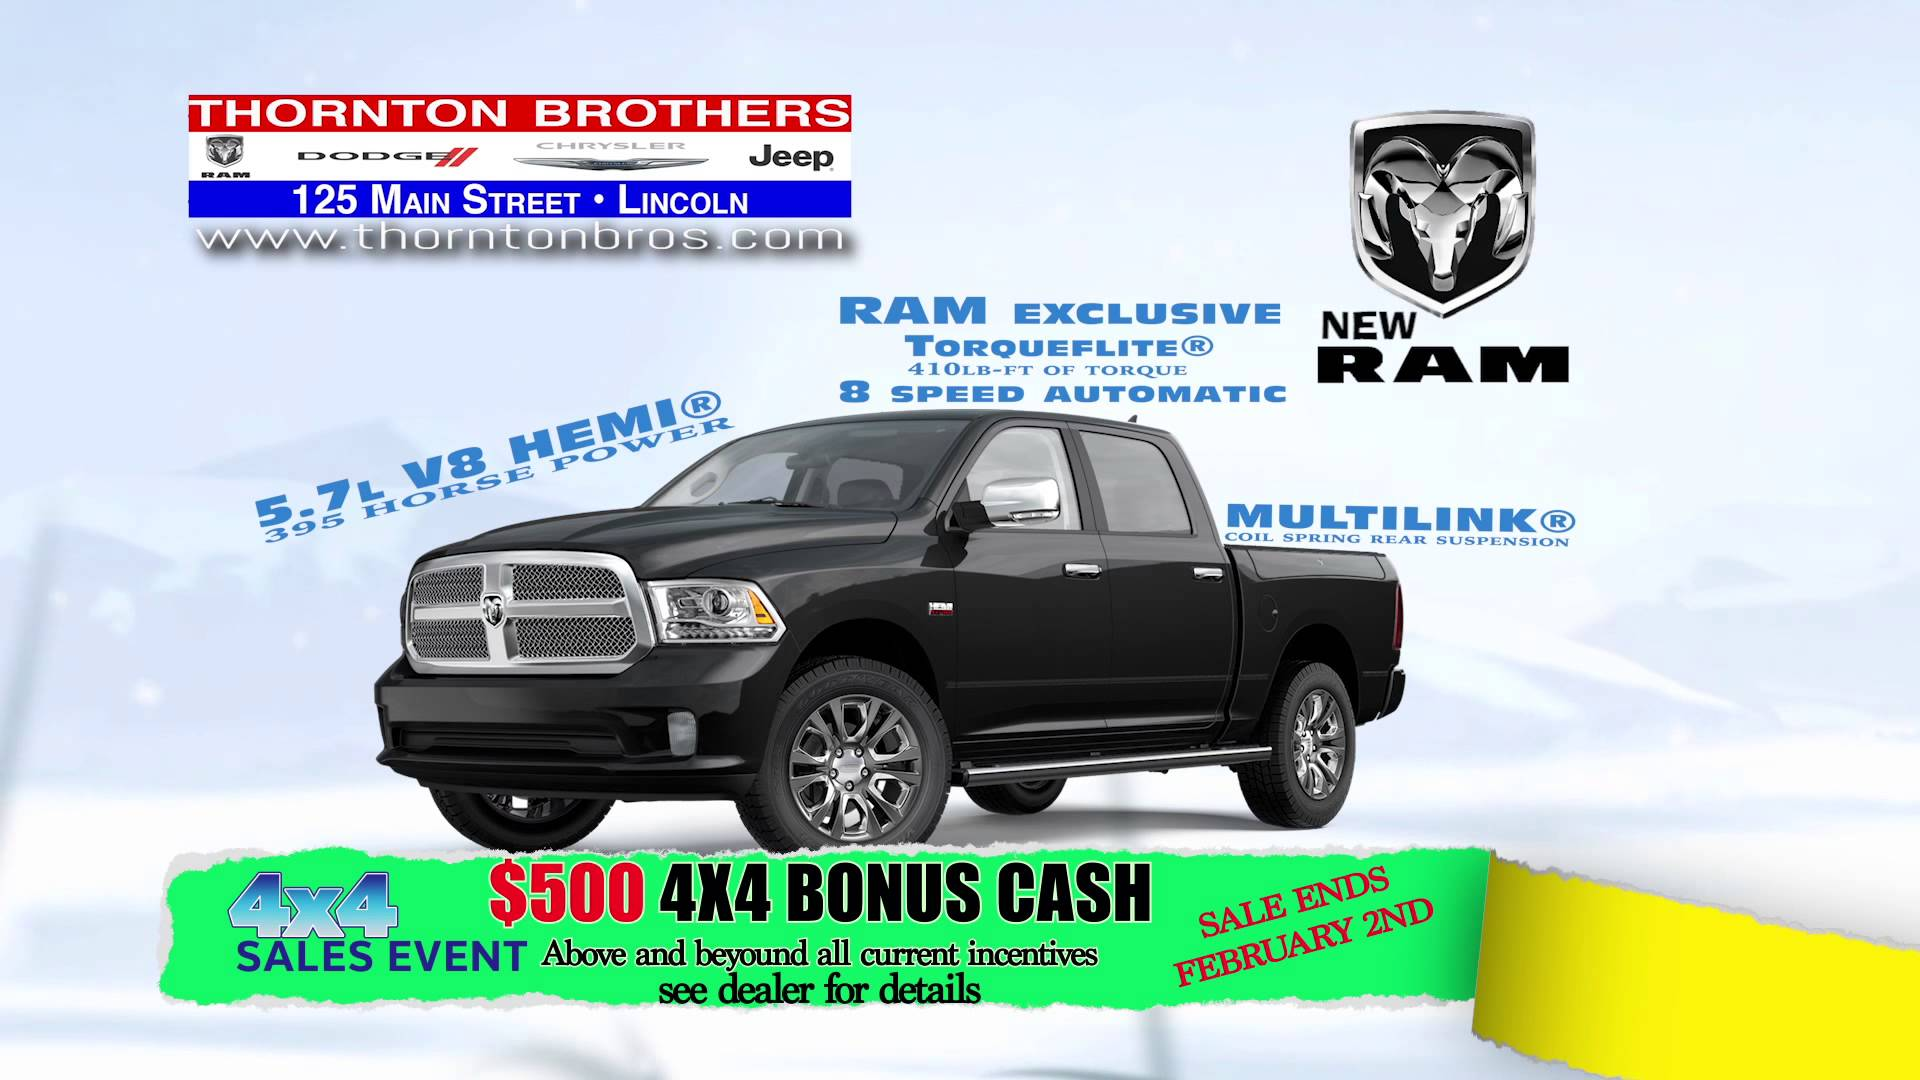 THORNTON BROTHERS_4X4 SALES EVENT 115R_RMVP235_HD